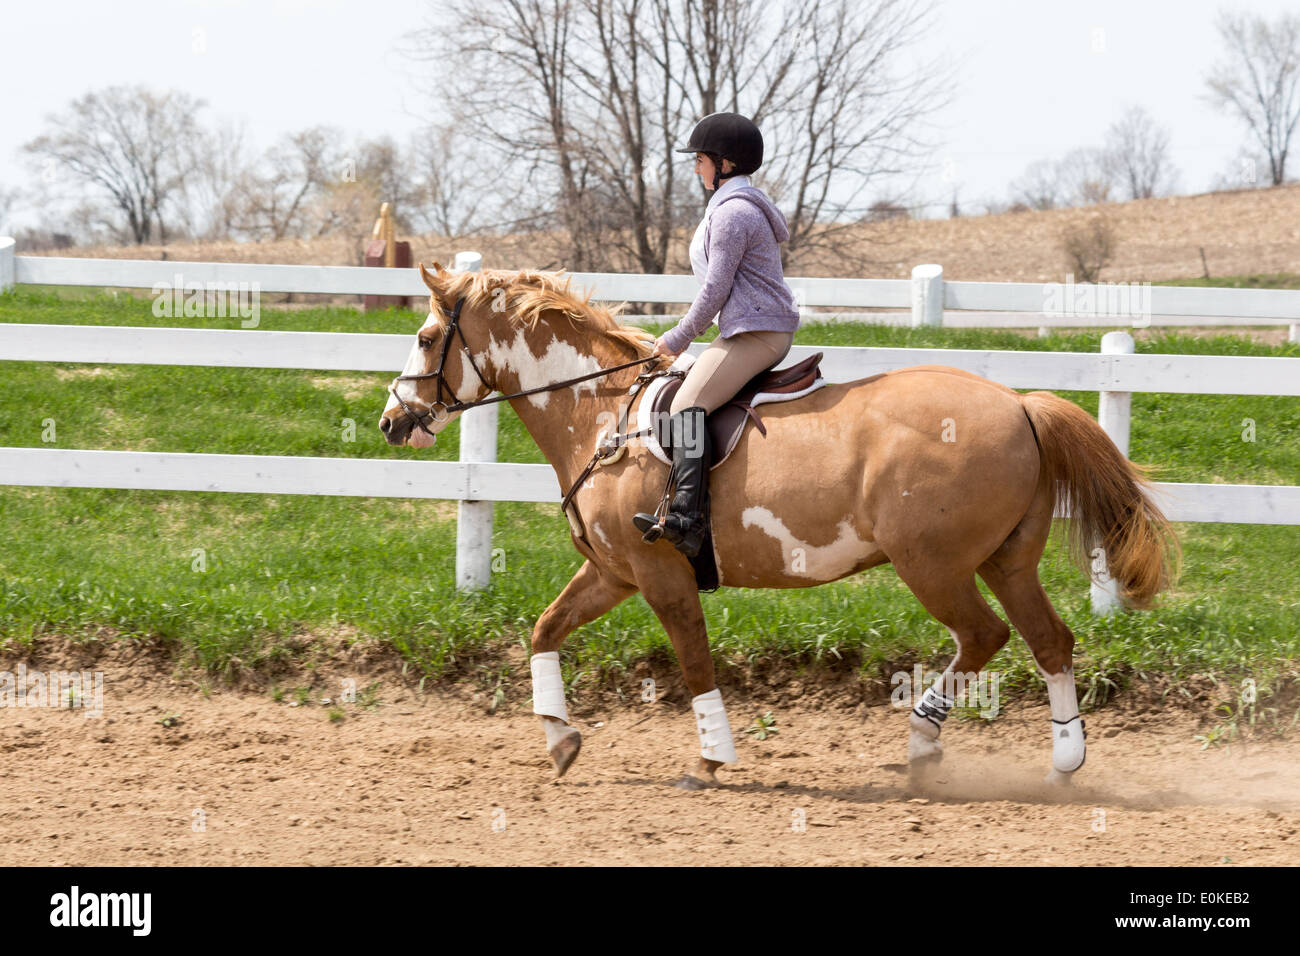 Teenage girl riding Paint horse pony in English riding attire and saddle on a sunny day. - Stock Image